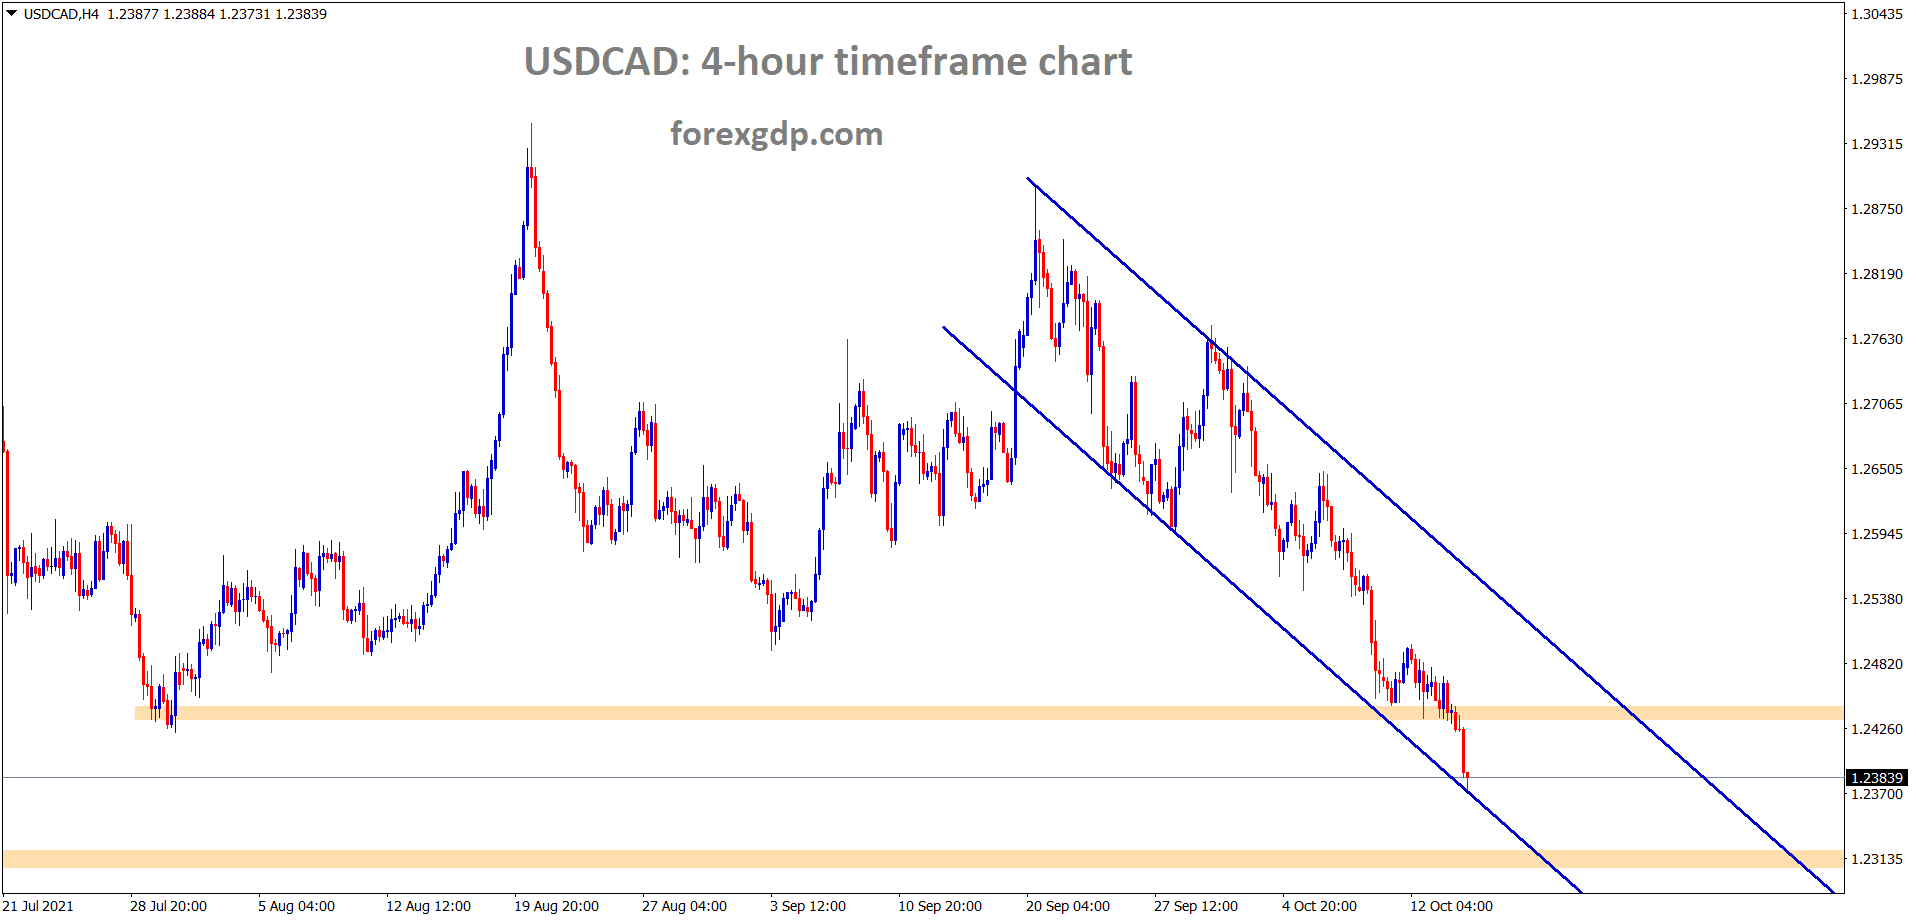 USDCAD is moving with strong sellers pressure due to increase in crude oil prices USDCAD is breaking all the recent supports without much retracements